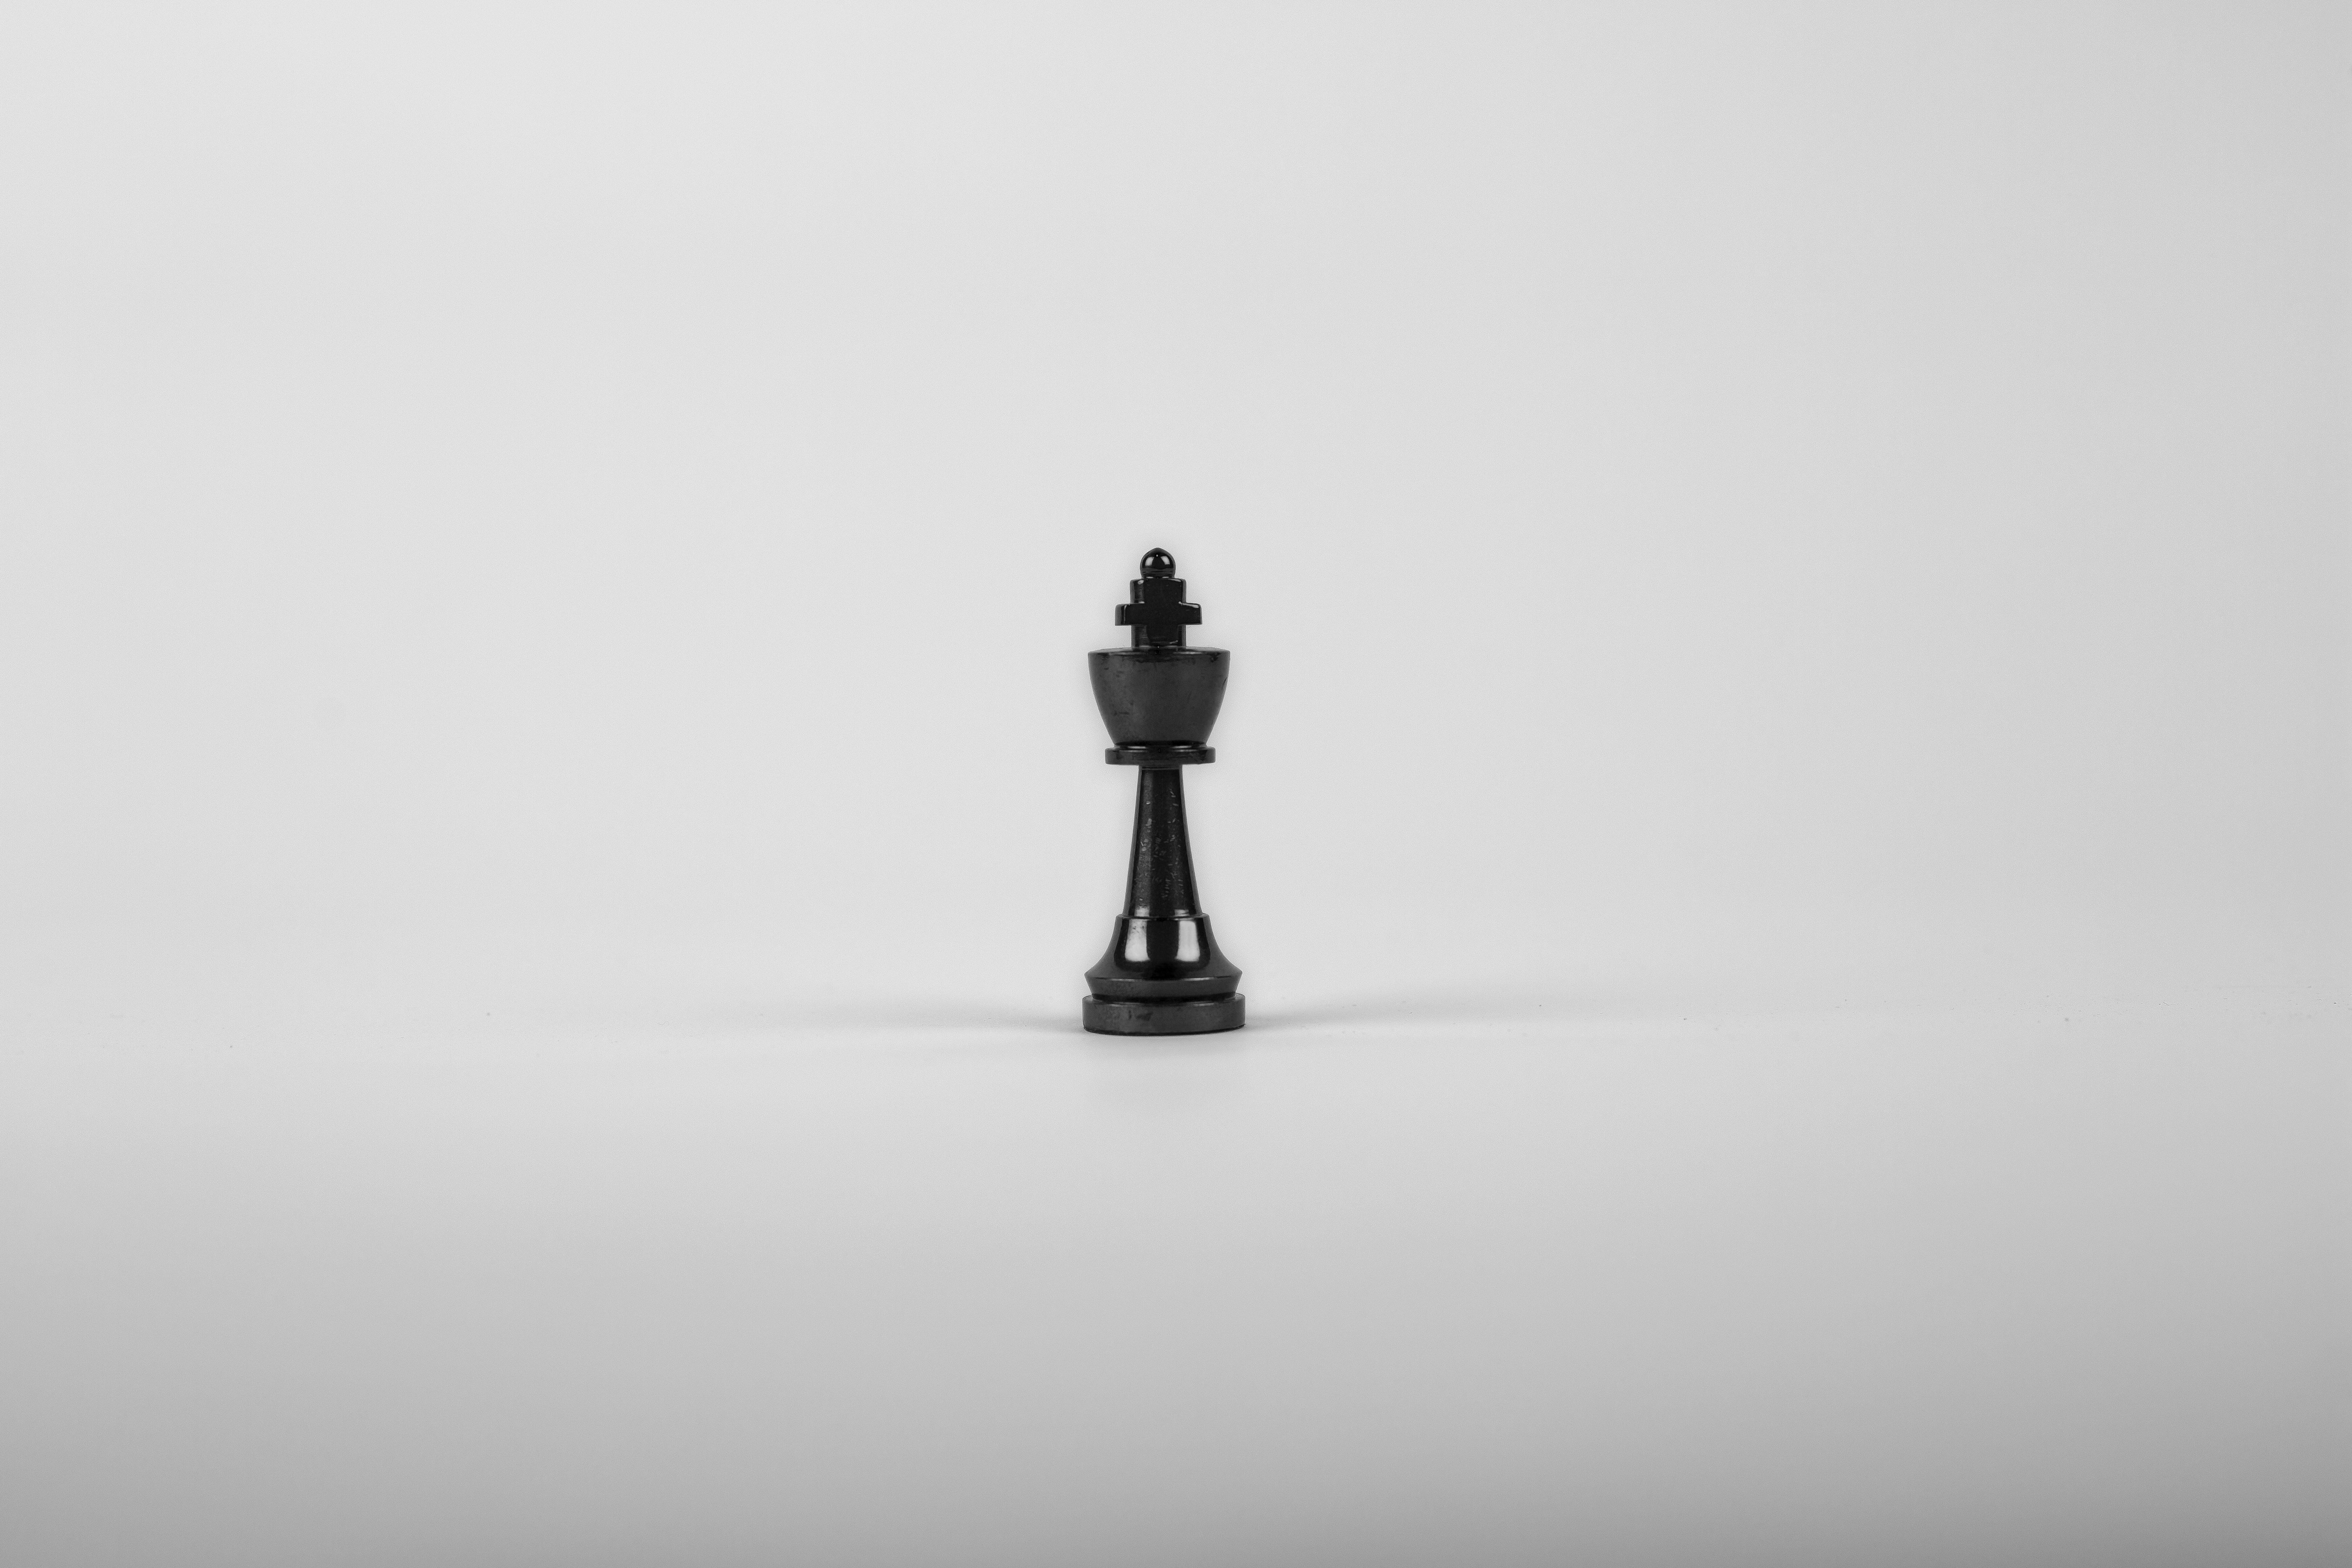 Free stock photo of sculpture, king, single, shadow